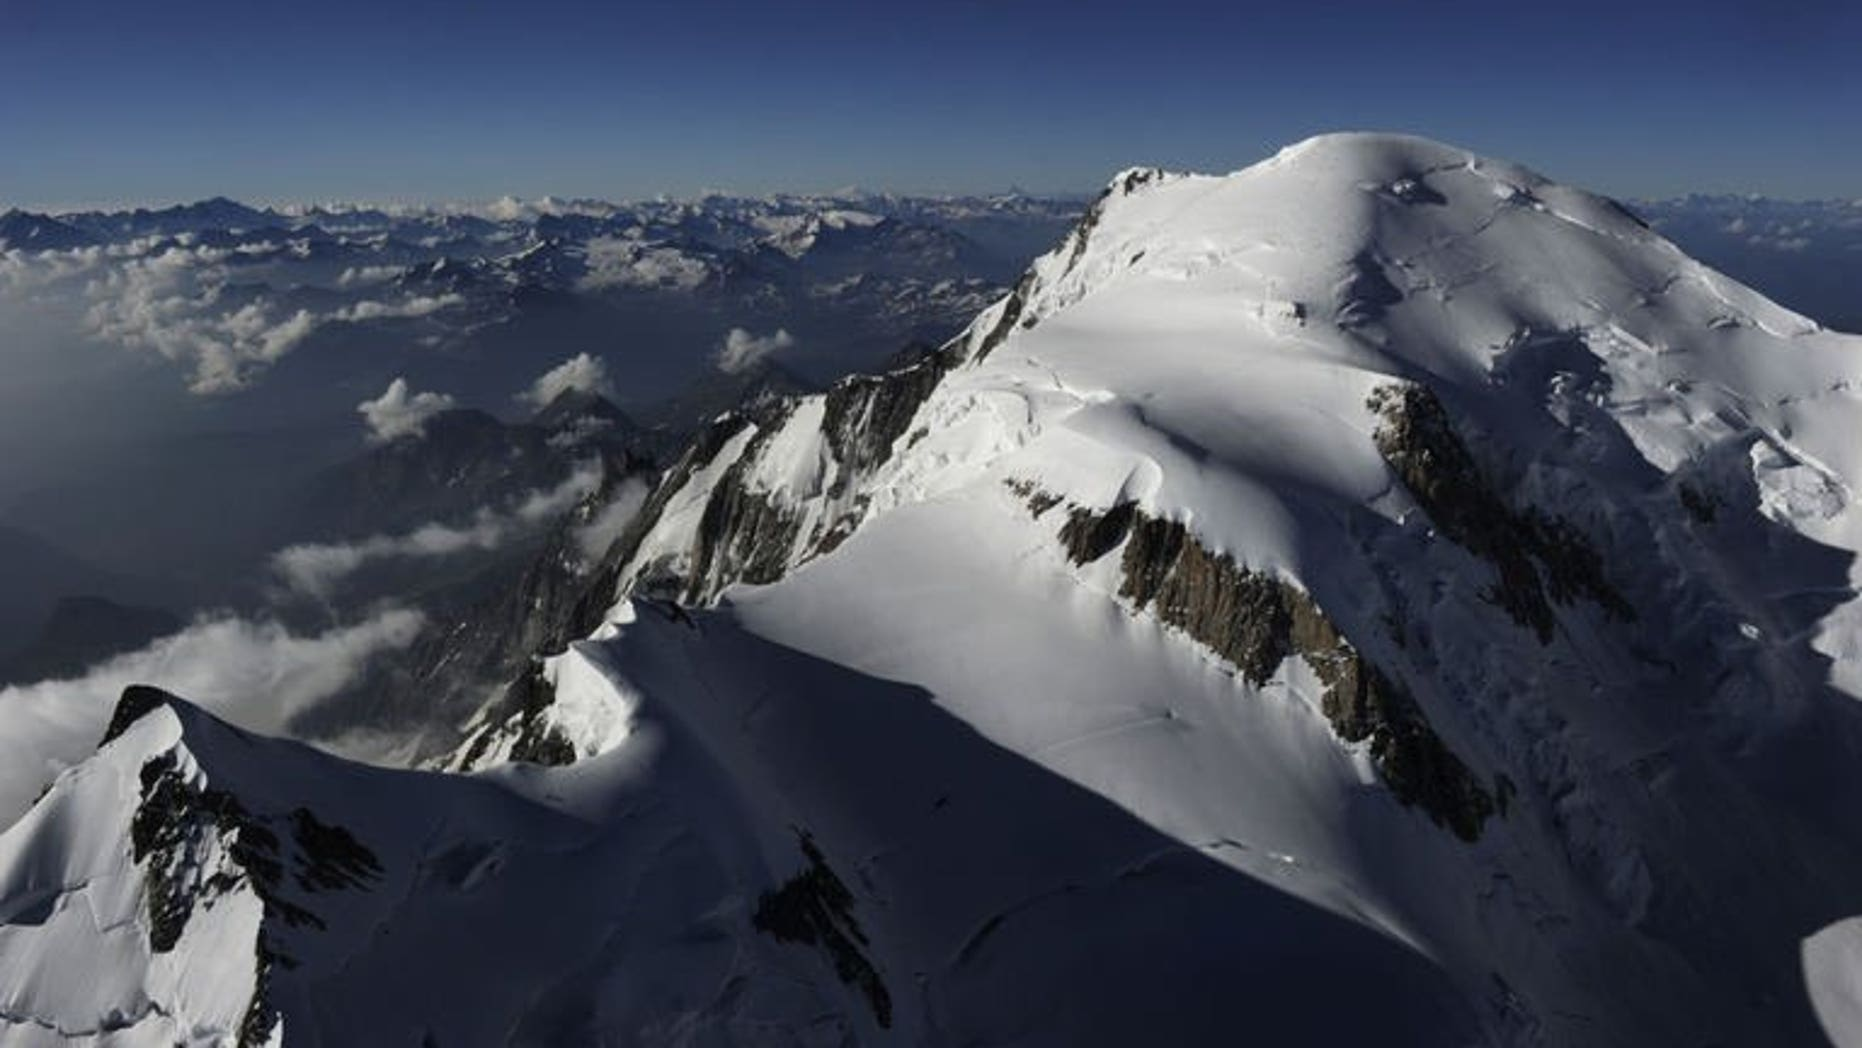 Mont-Blanc, in the French Alps, pictured on July 16, 2010.